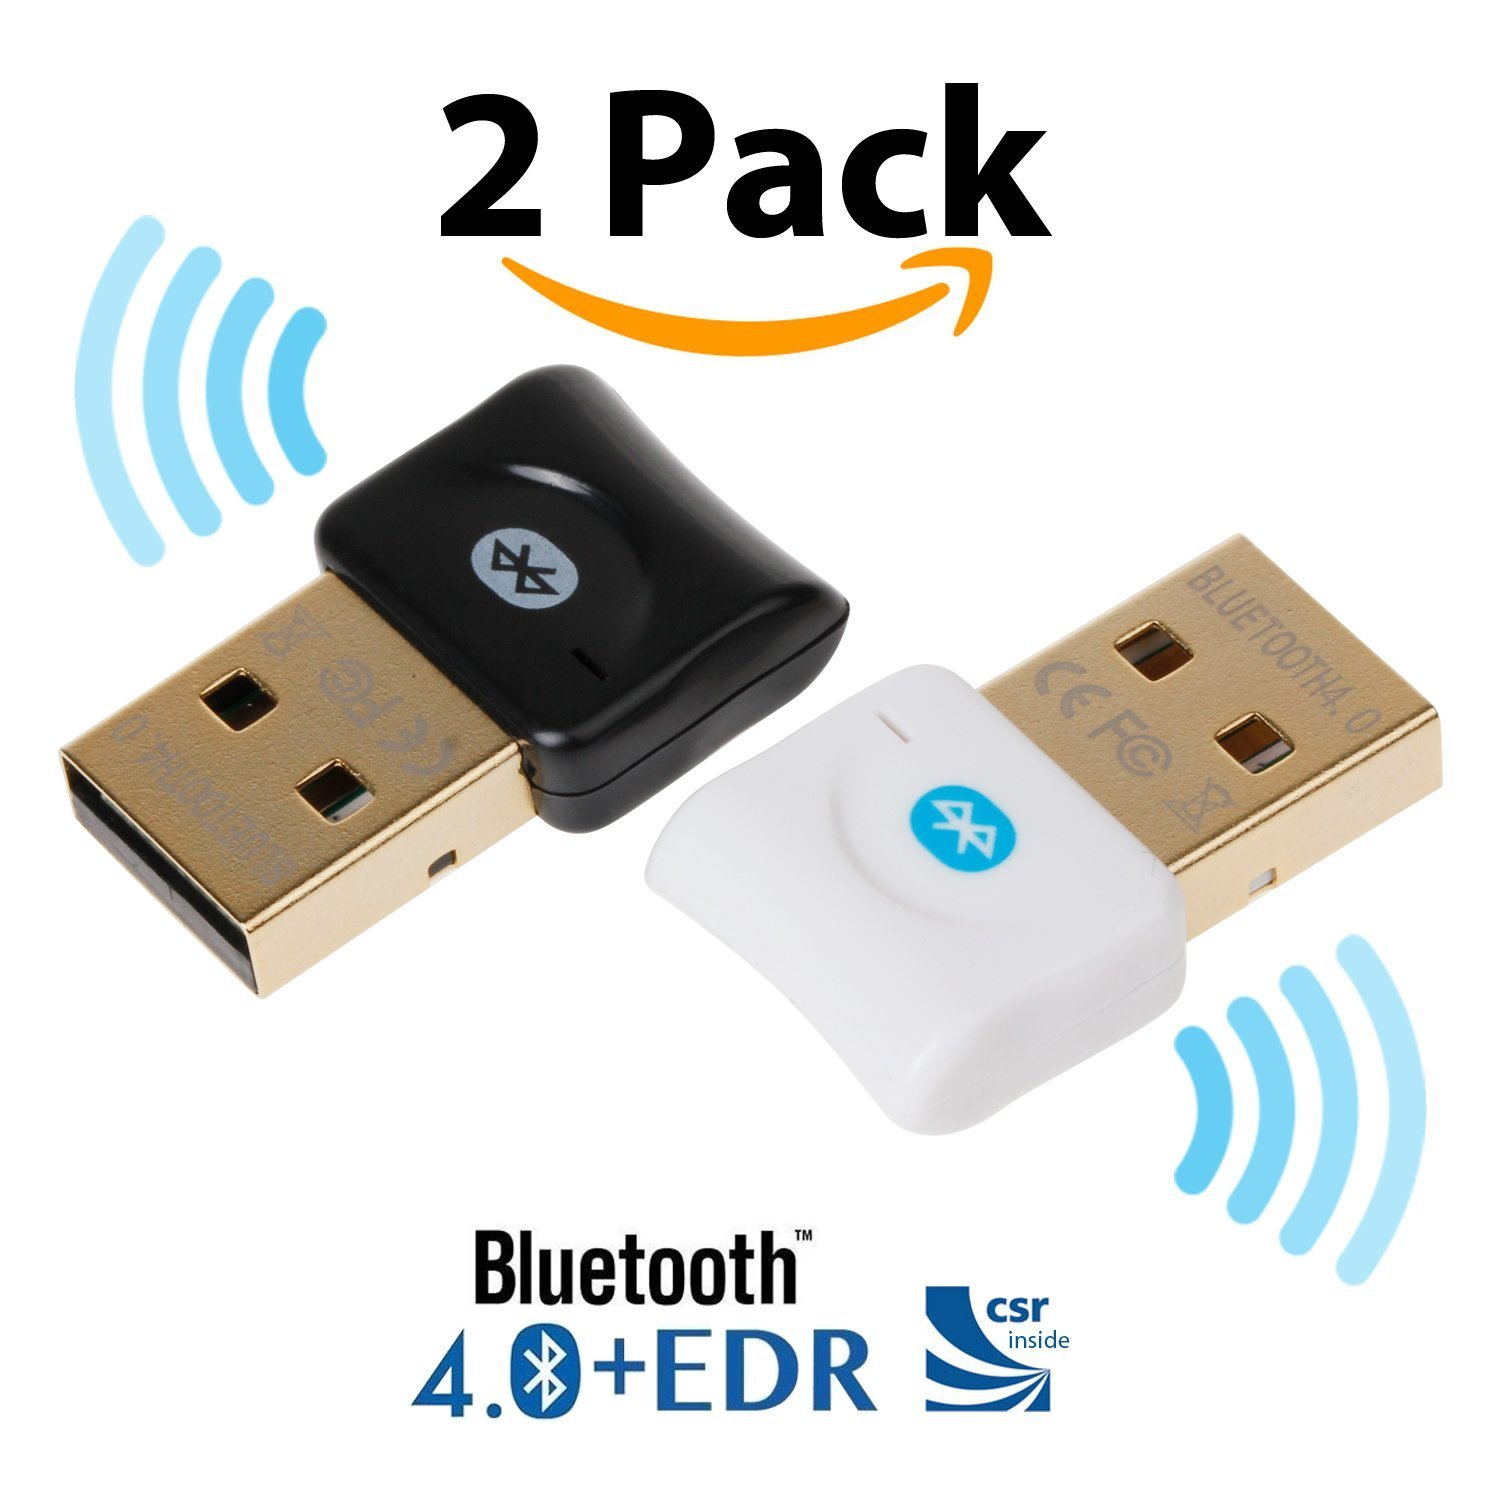 Bluetooth CSR 4.0 USB Dongle Adapter, EKSEN Bluetooth Transmitter and Receiver for Windows 10/8.1/8 / 7 / Vista - Plug and Play on Win 7 and Above - Black and White